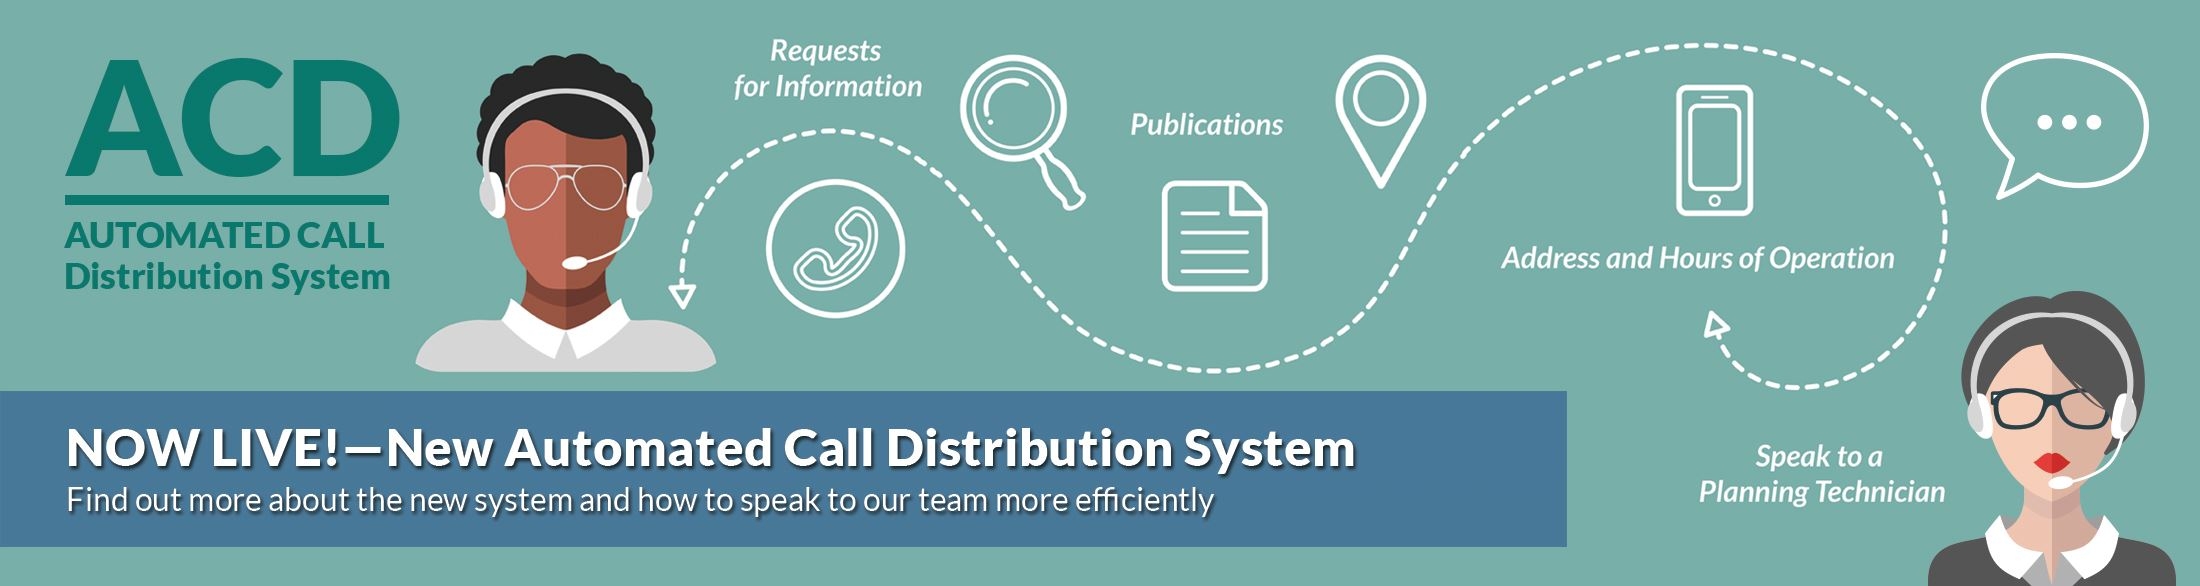 •	Automated Calling Distribution (ACD) System: Need to get some planning information or have questio